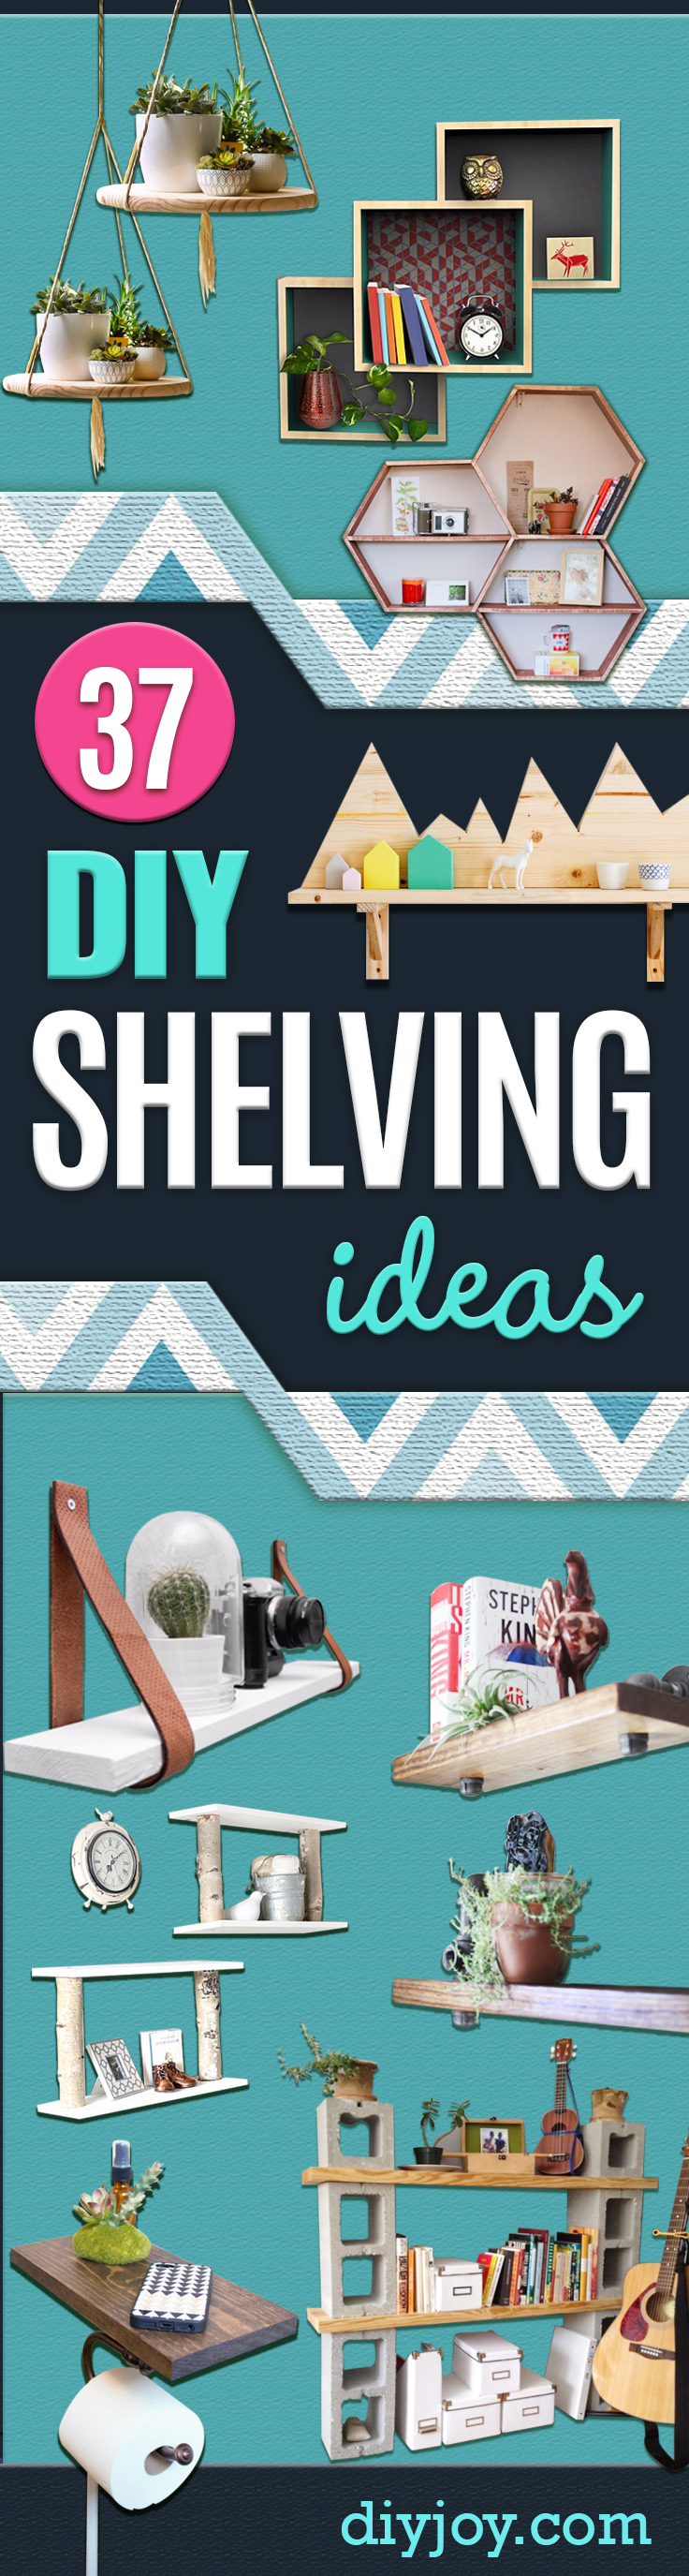 DIY Shelves and Do It Yourself Shelving Ideas - Easy Step by Step Shelf Projects for Bedroom, Bathroom, Closet, Wall, Kitchen and Apartment. Floating Units, Rustic Pallet Looks and Simple Storage Plans